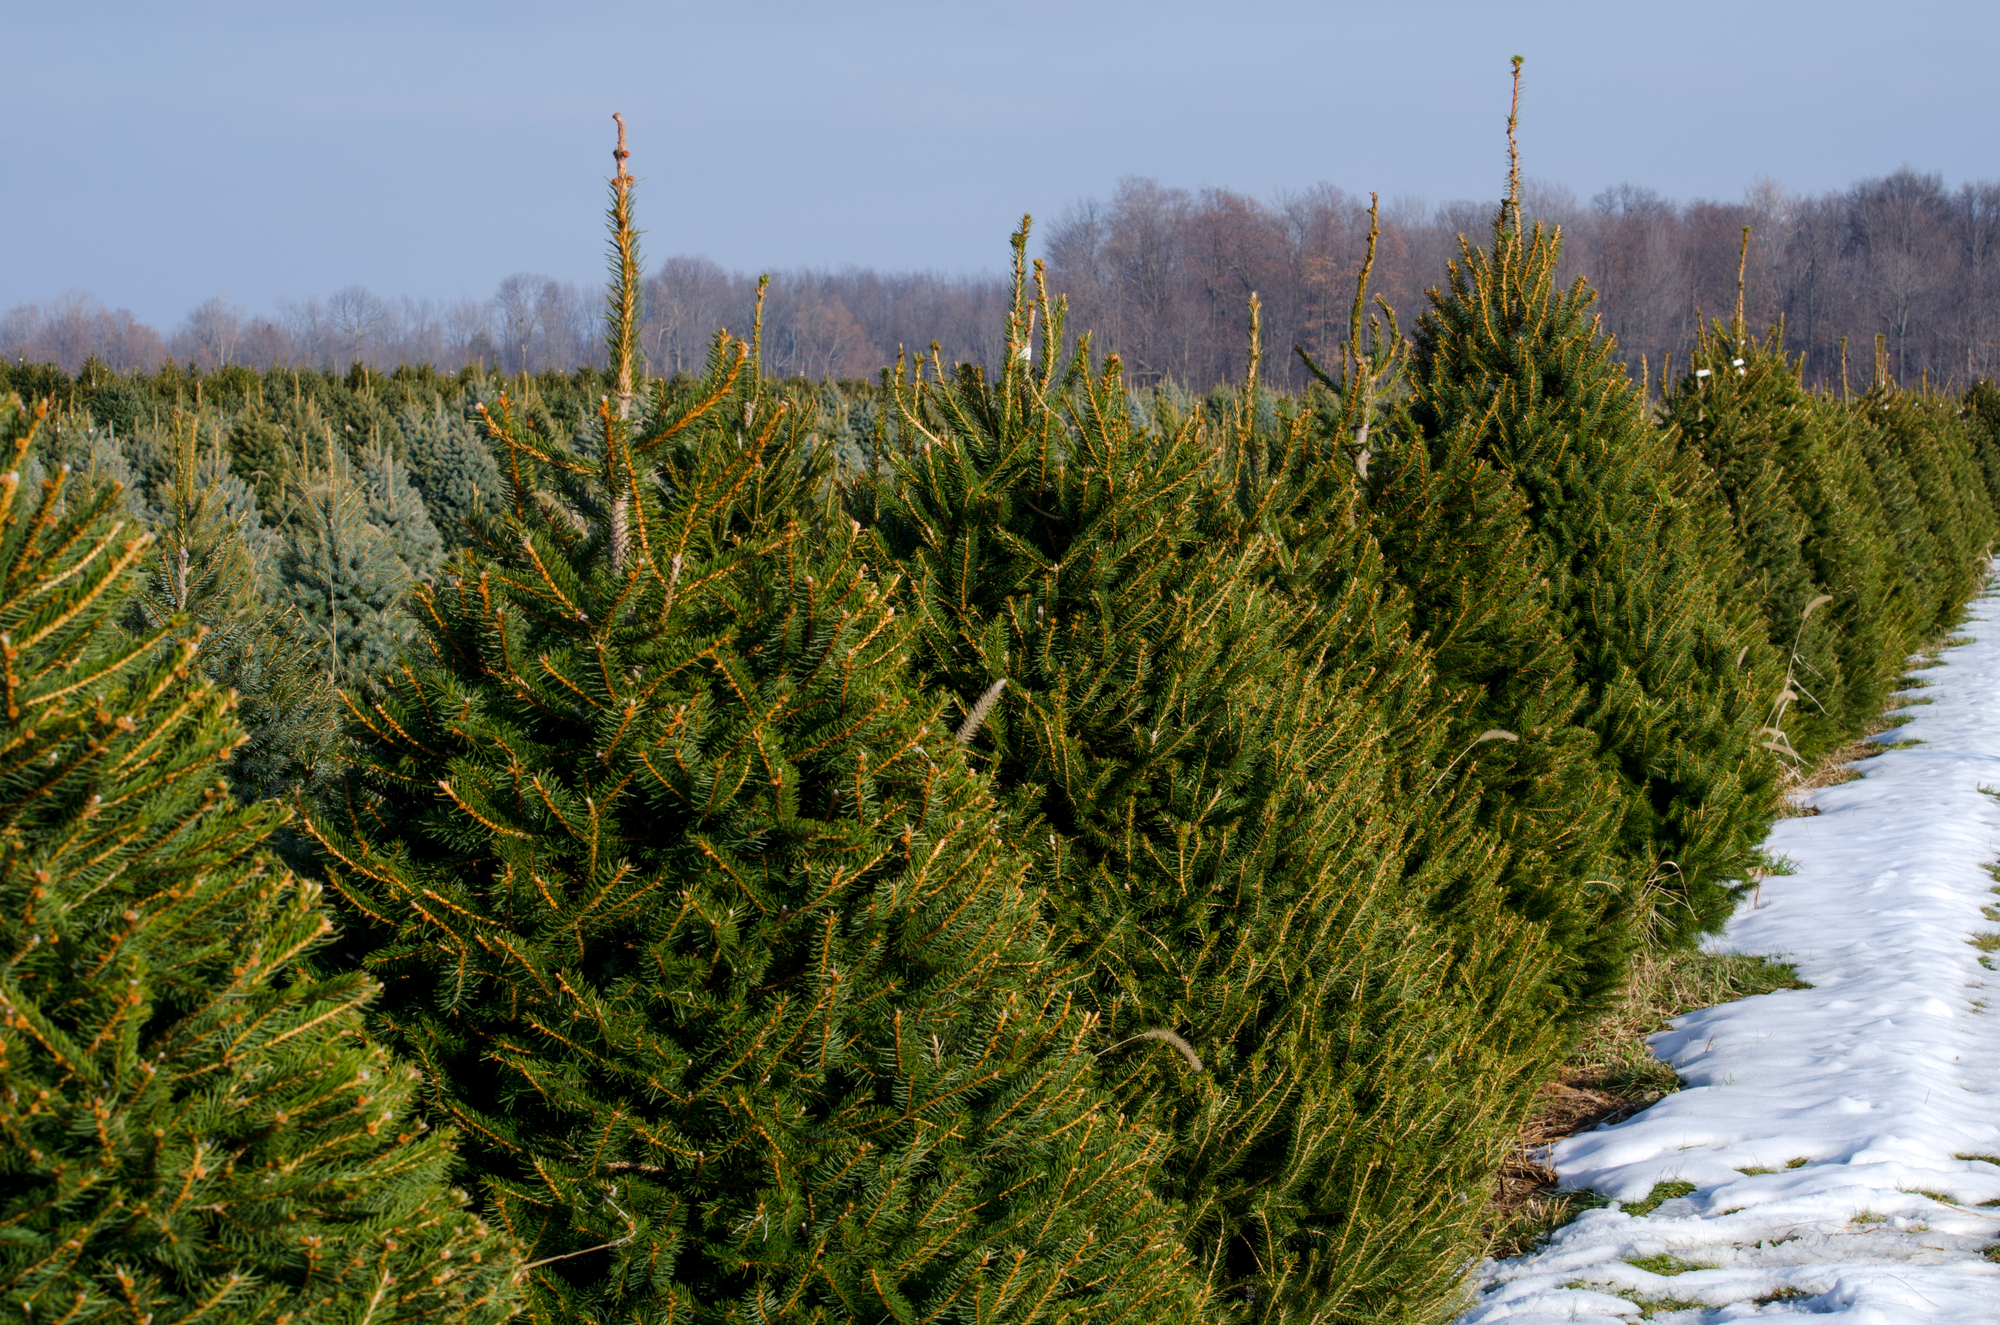 200 Of The Best Christmas Tree Farms To Visit